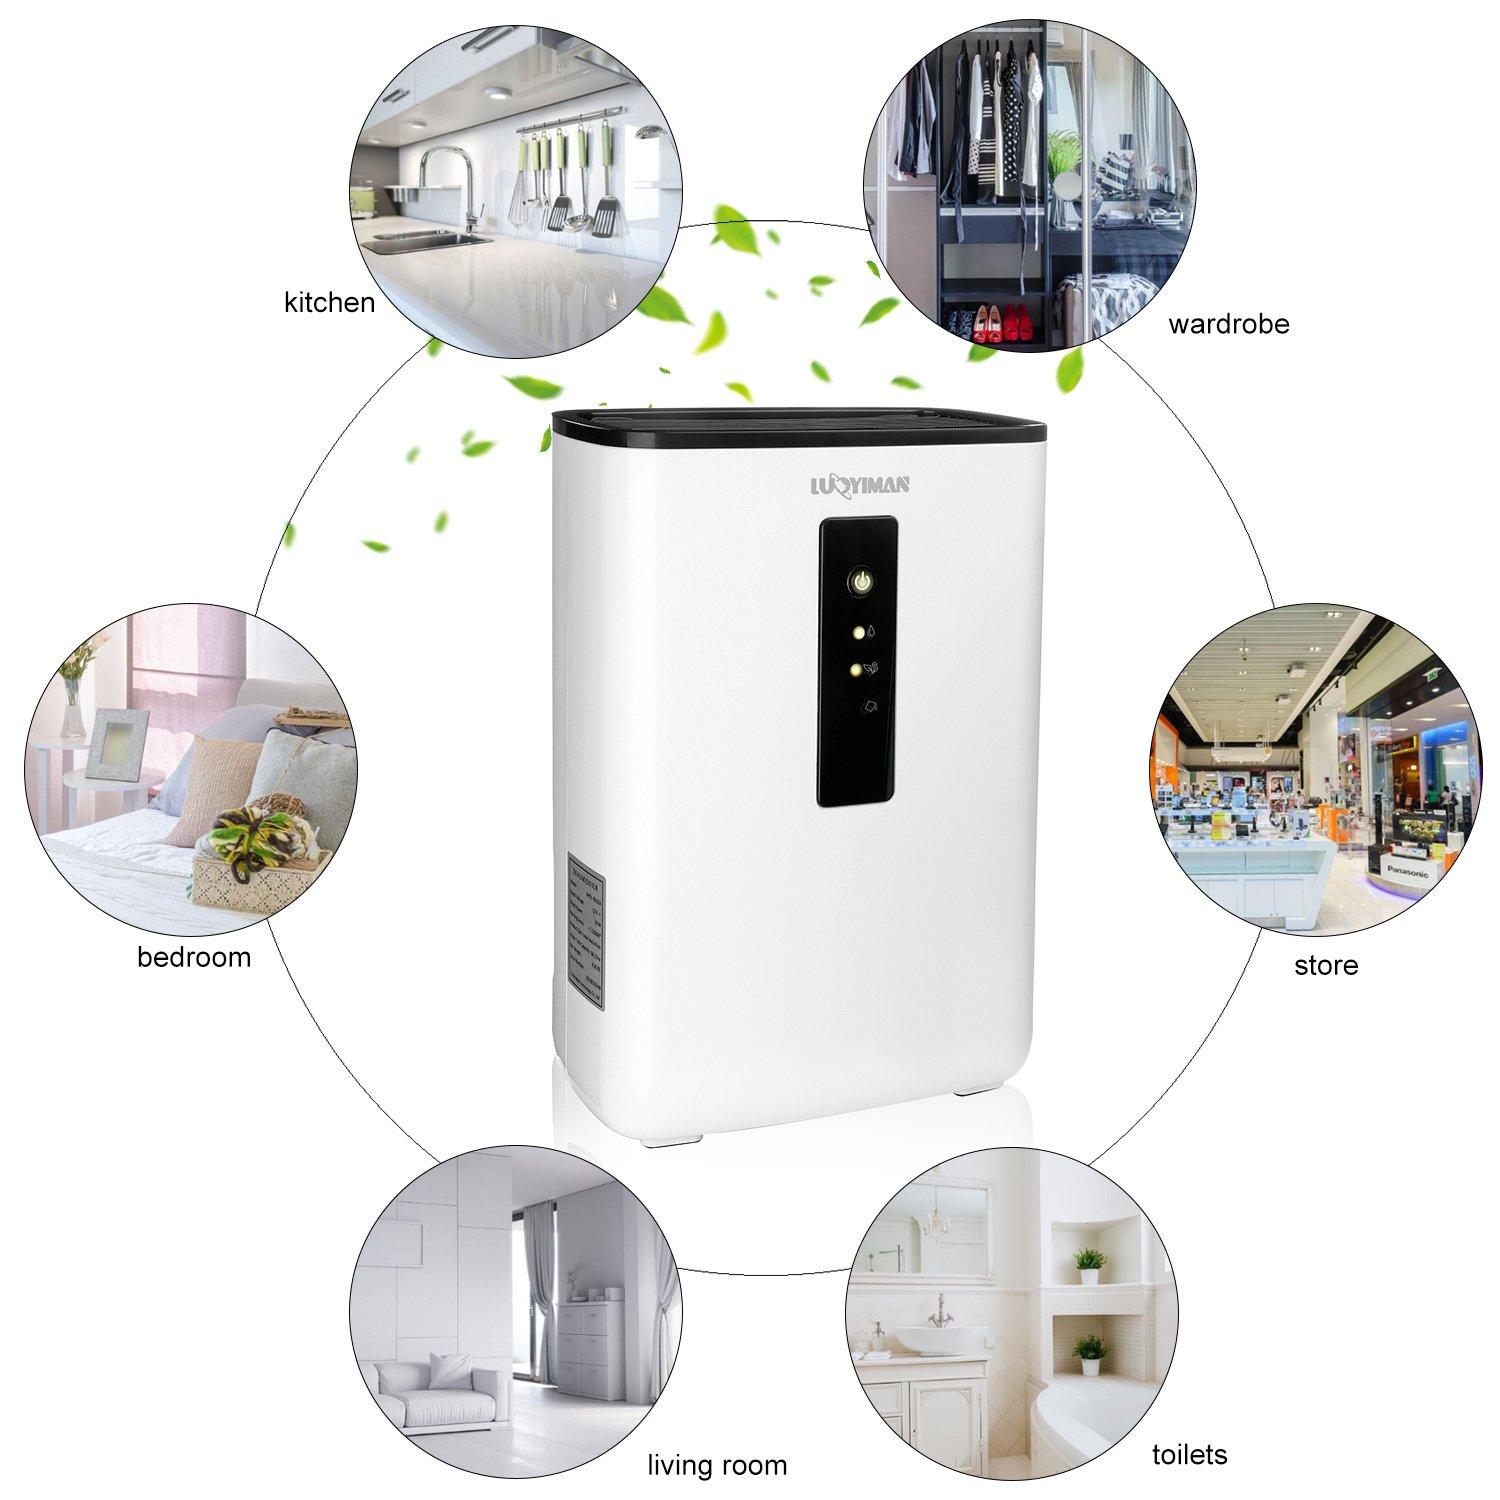 LUOYIMAN Dehumidifier Electric Home Dehumidifier Quiet Operation with UV Sterilization (2.5 Liter) by LUOYIMAN (Image #4)